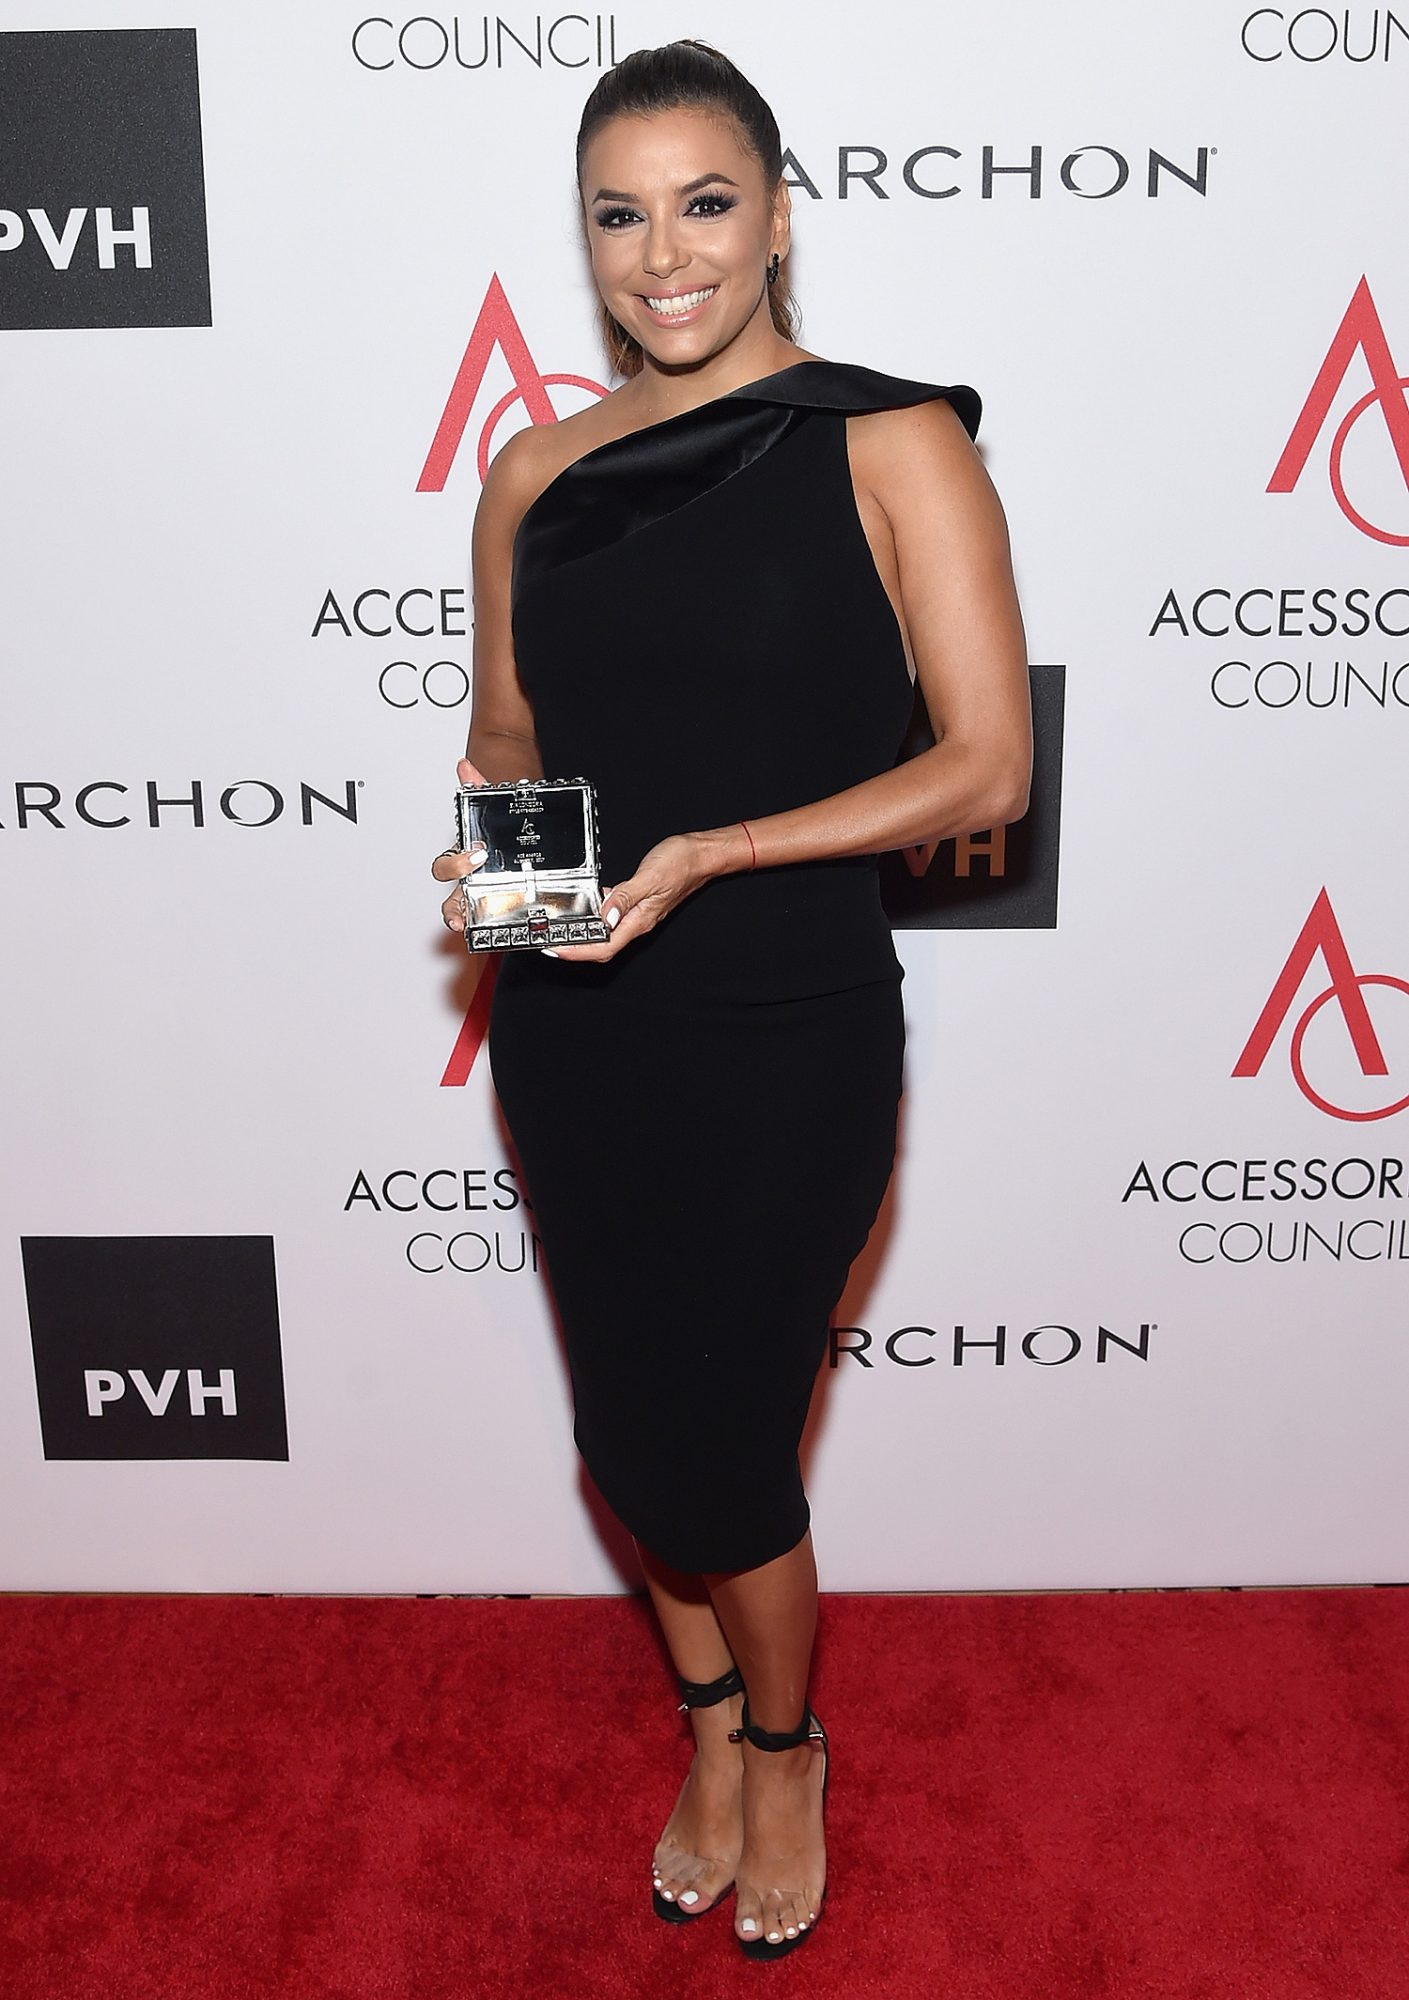 Accessories Council Celebrates The 21st Annual Ace Awards - Inside